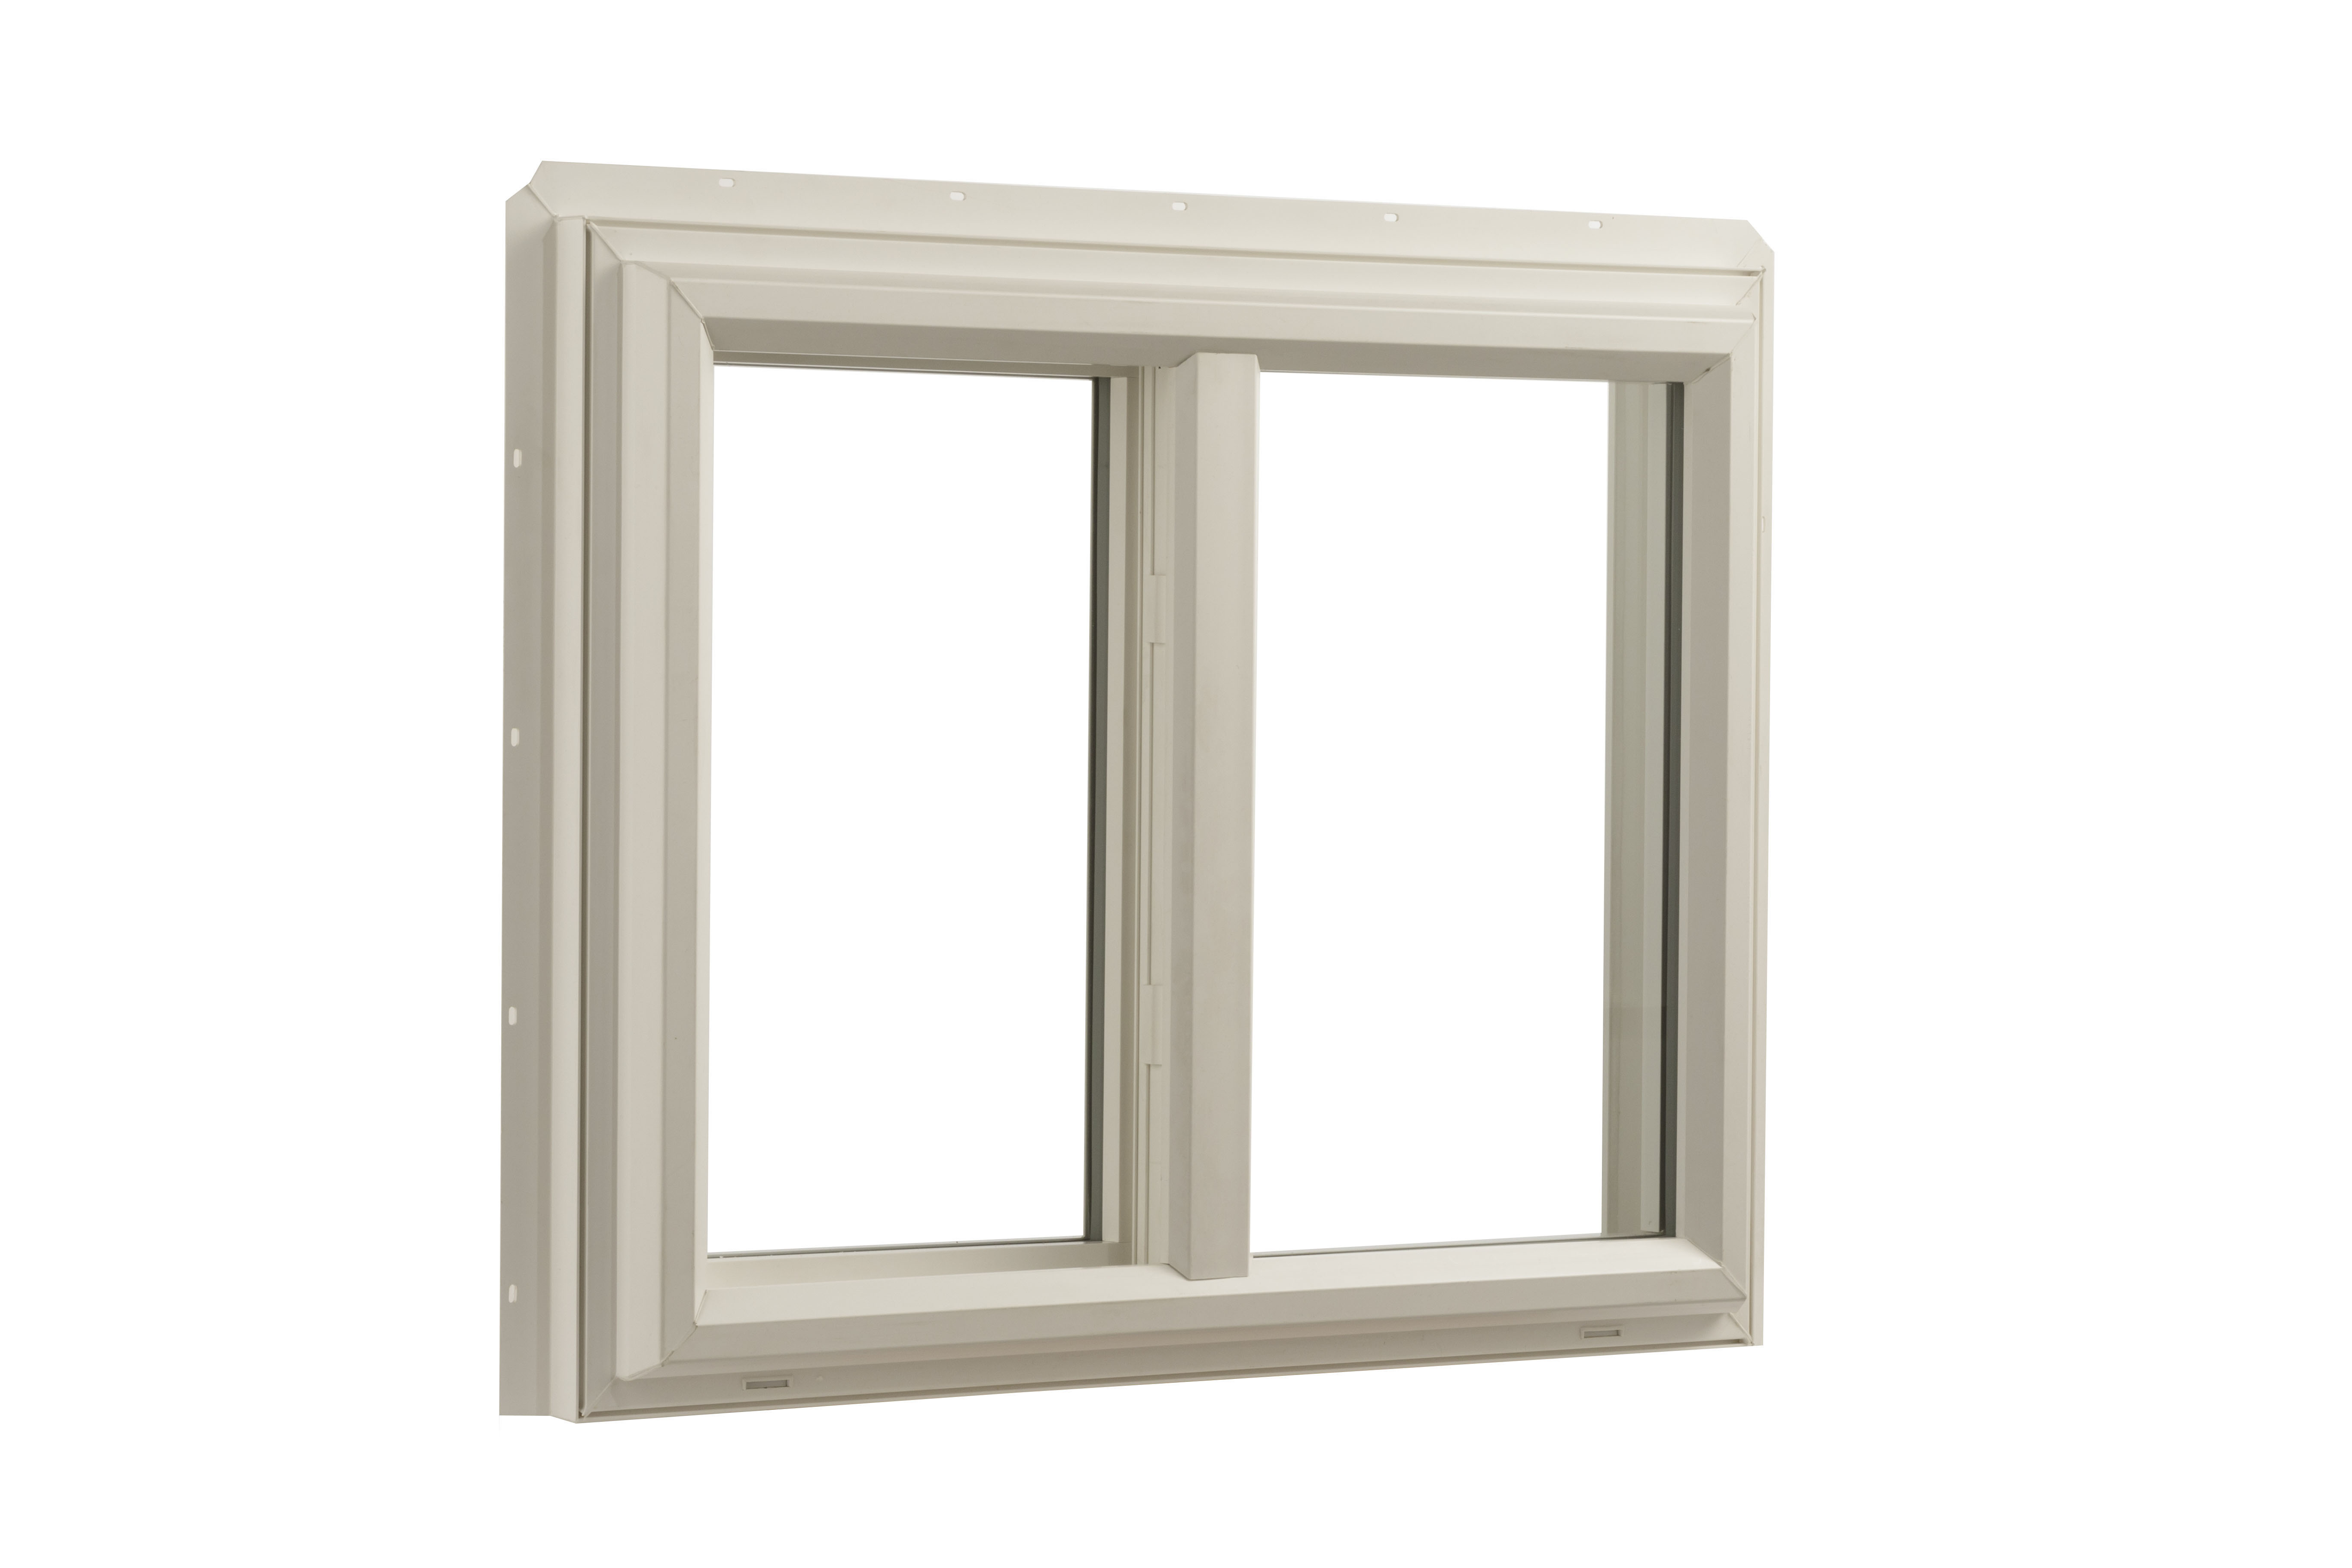 Envision Glider Windows Offer A Bold Sophisticated Look While Heavy Duty Construction And Design Deliver Exceptional Performance Ratings